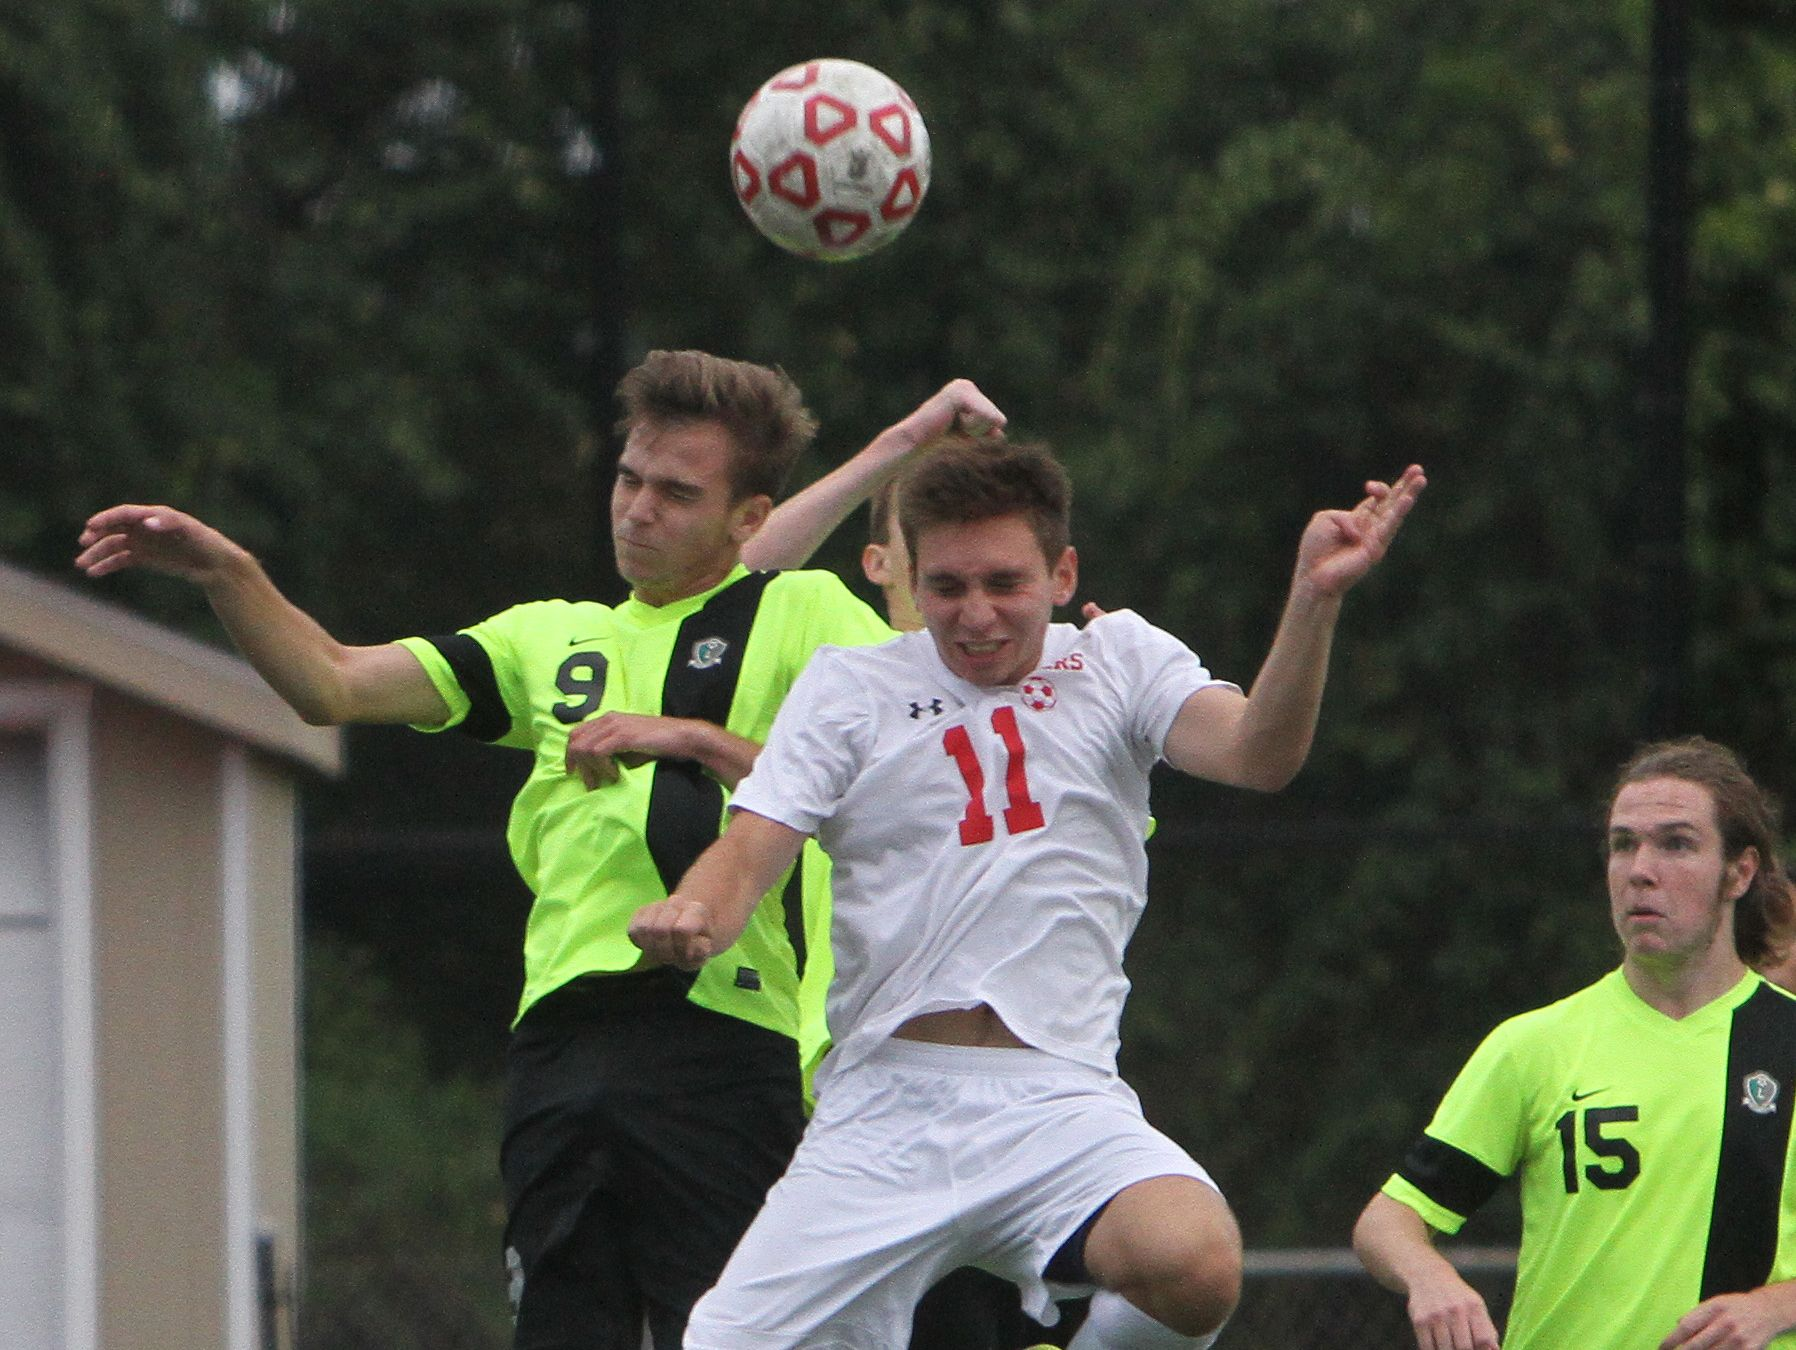 Lakeland's Matias Prando, left, and Somers' John Riina both go up for a header during their game at Somers High School on Wednesday. Lakeland won the game 2-1 in overtime.